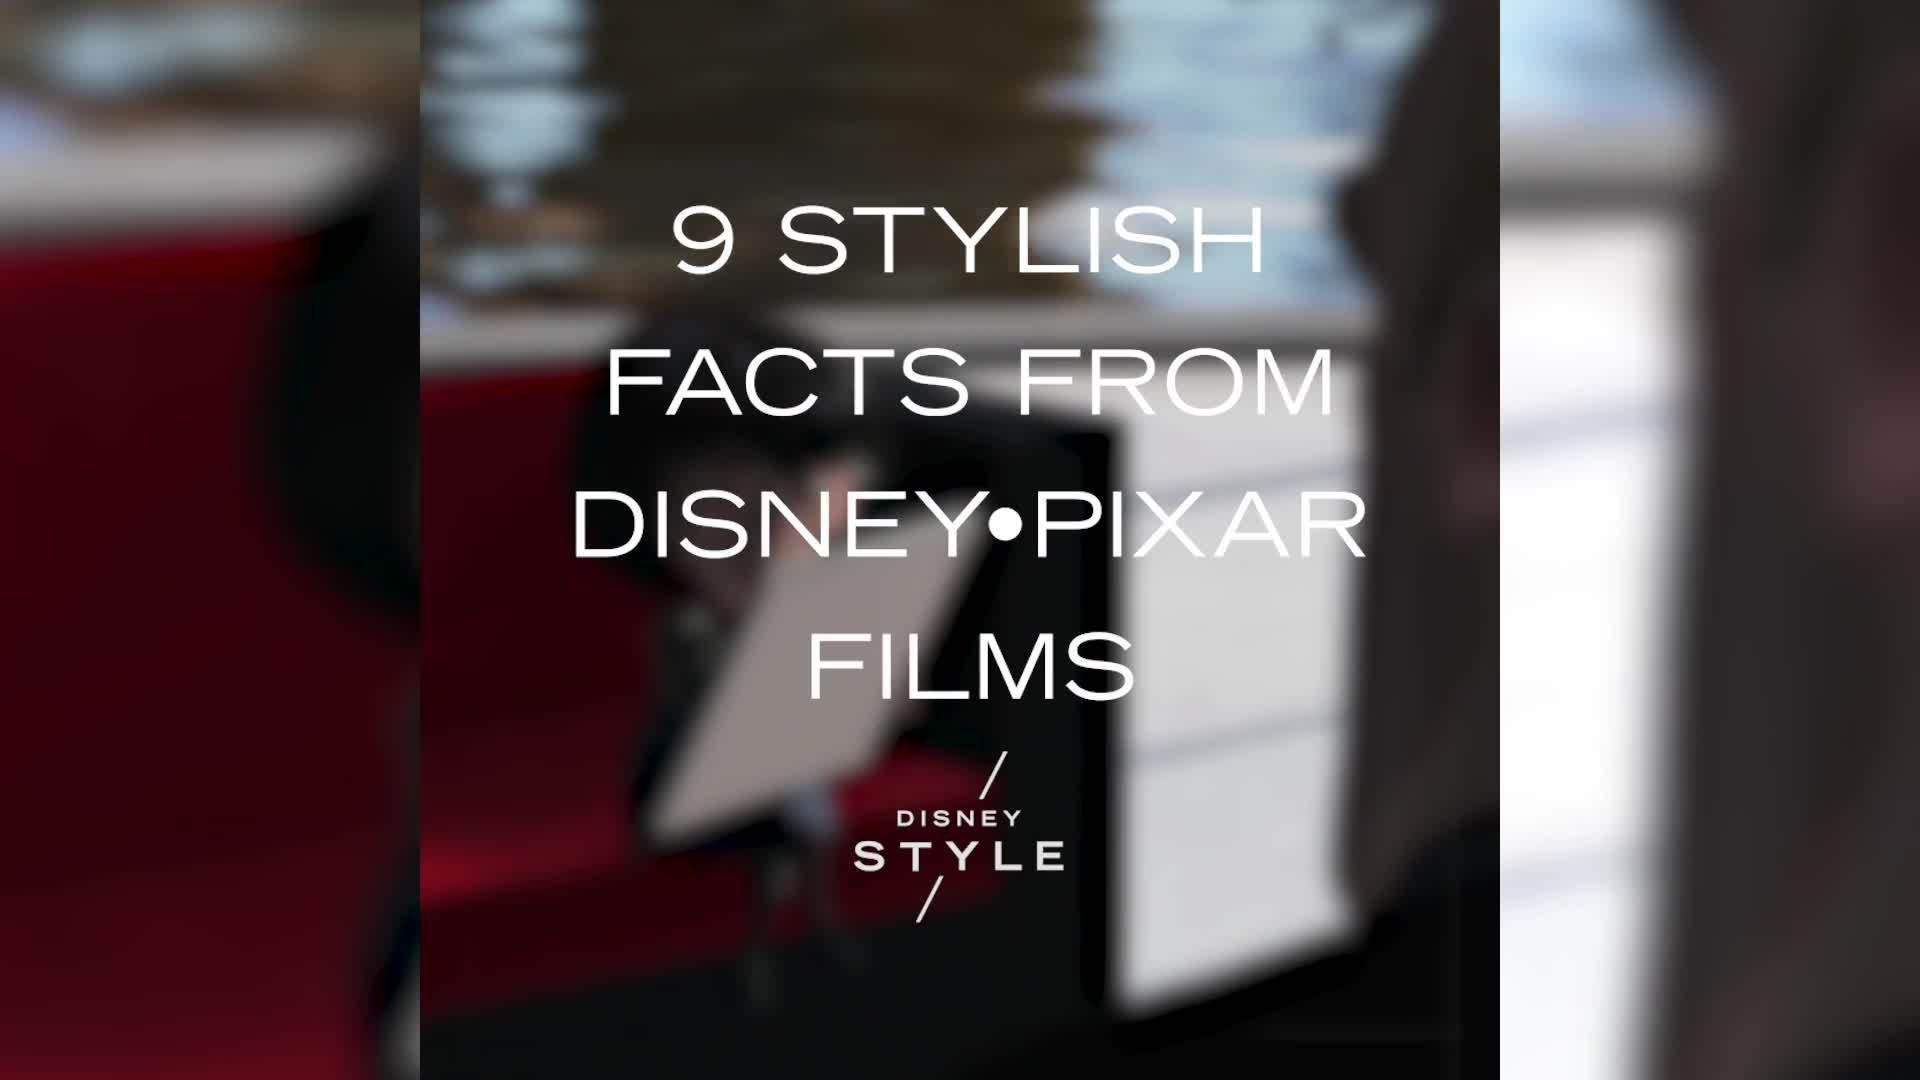 9 Stylish Facts From Disney•Pixar Films | Facts by Disney Style